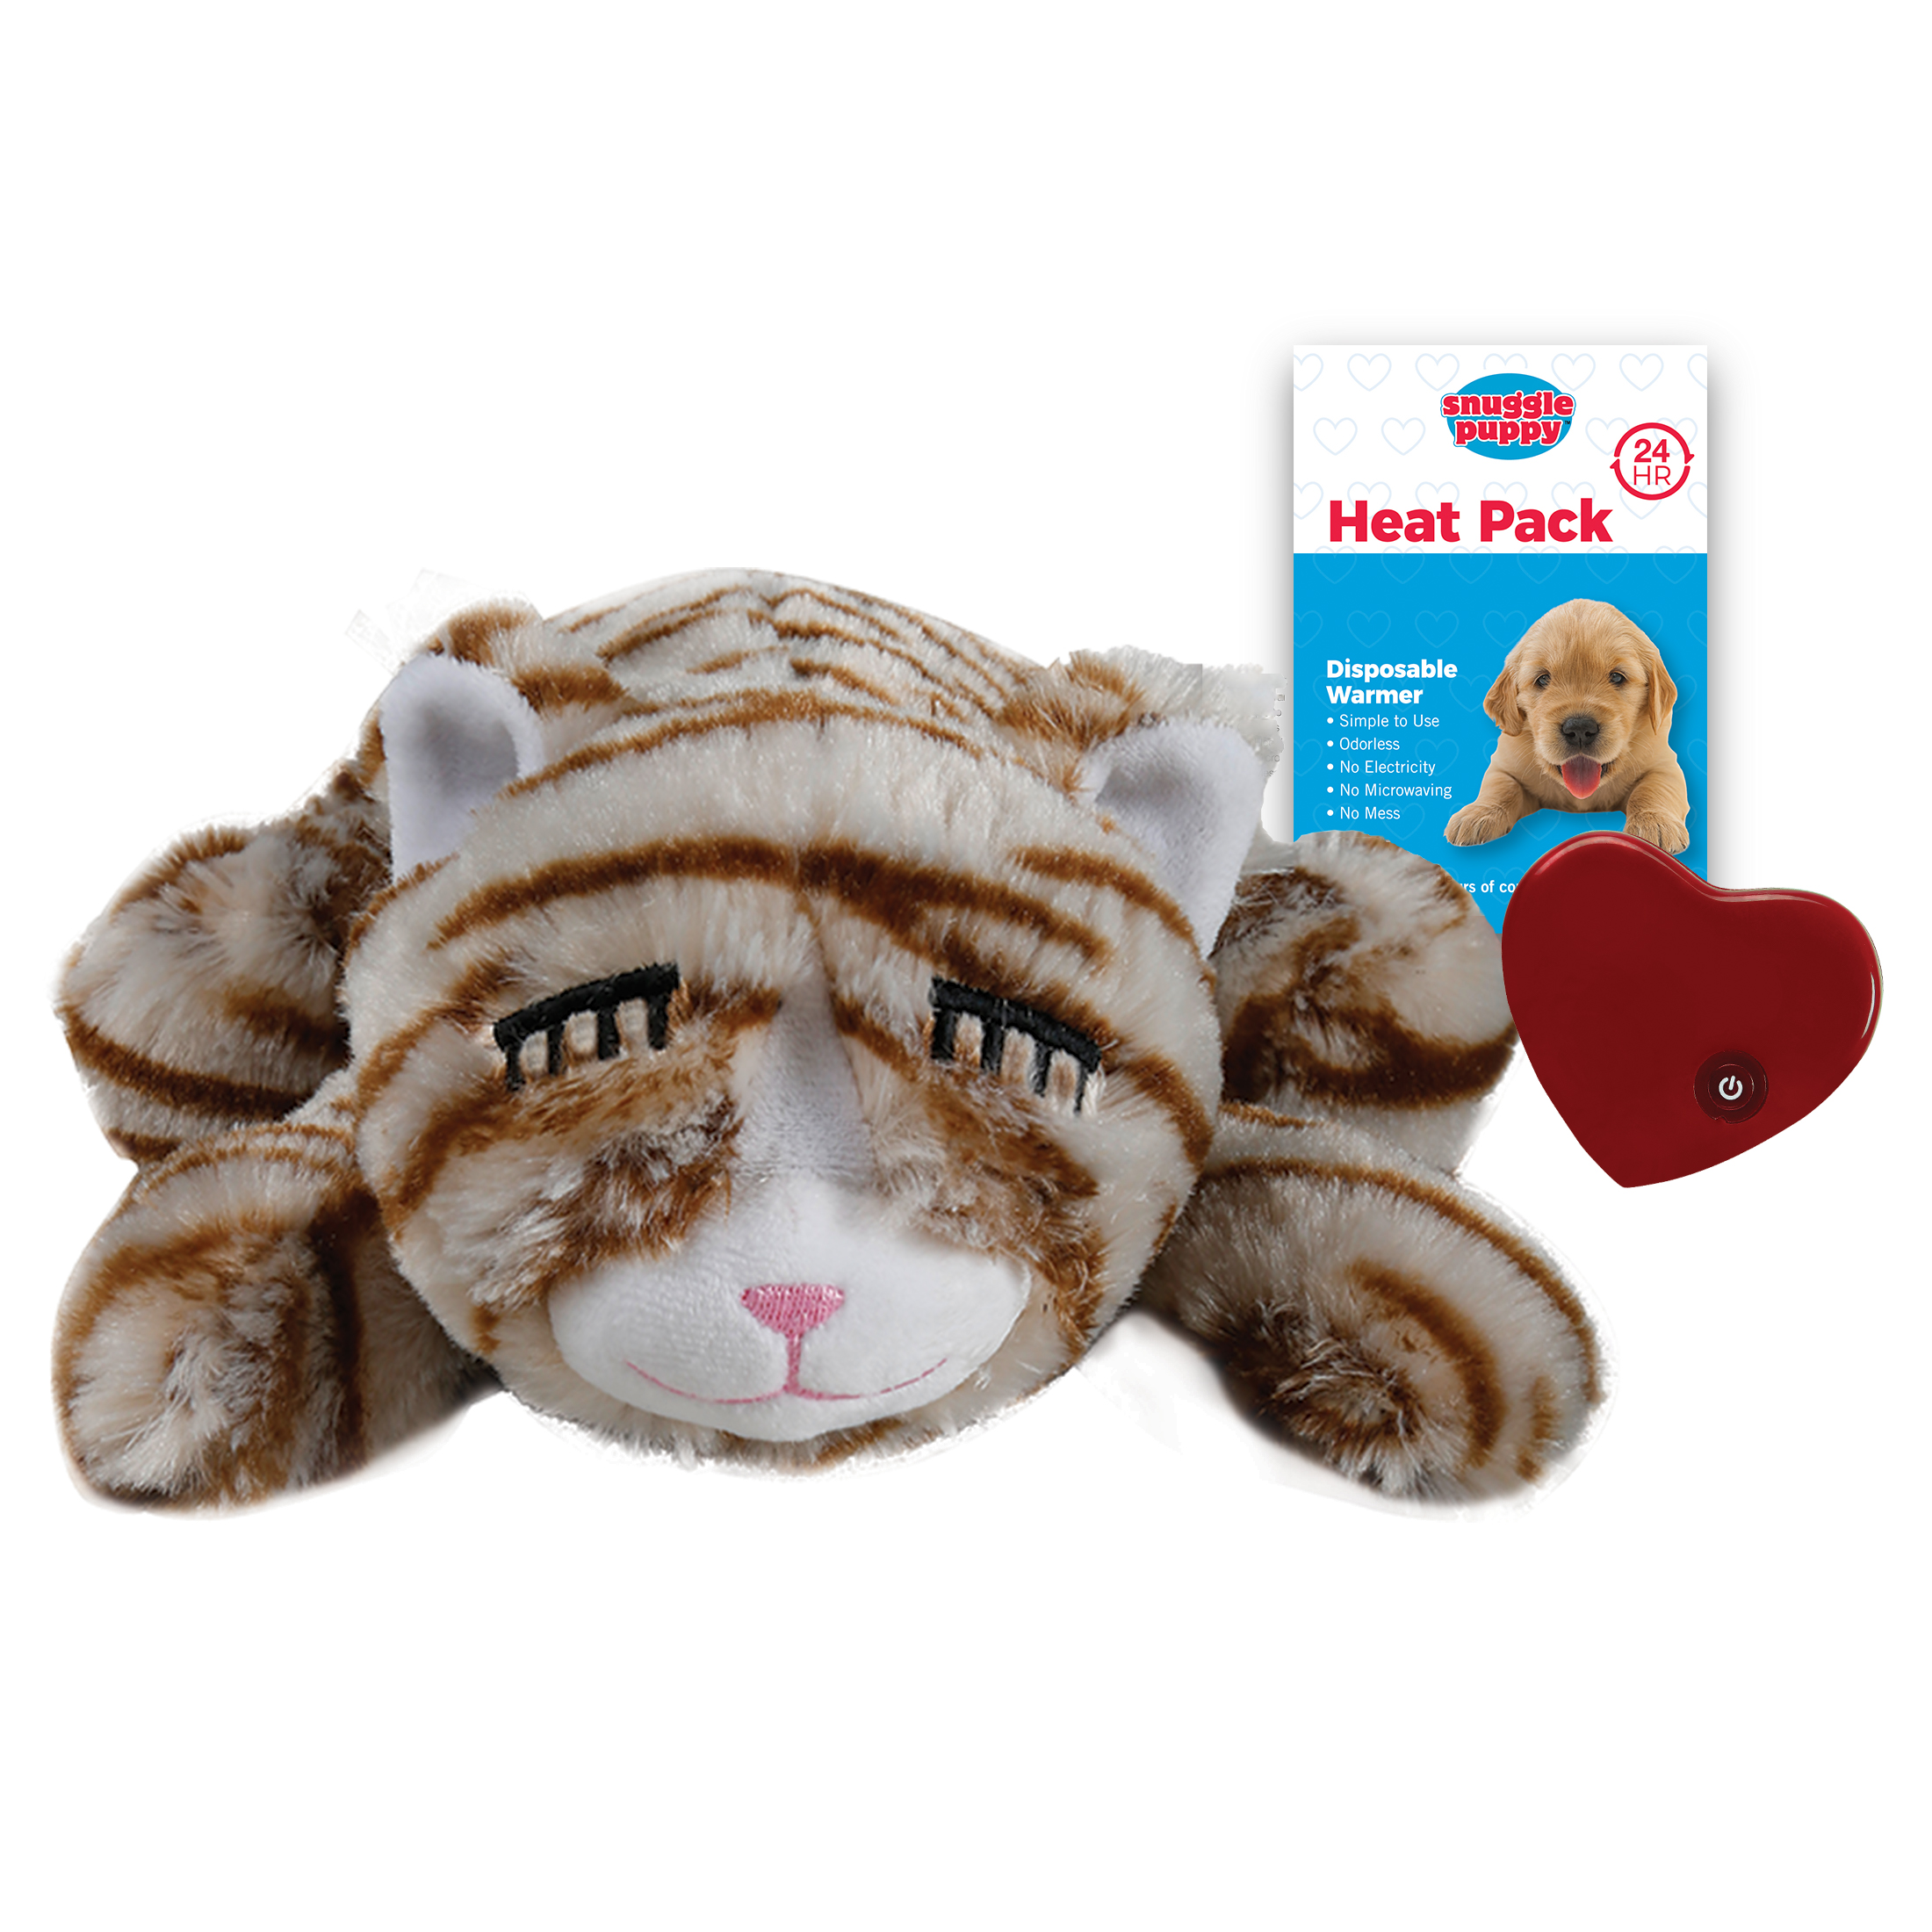 Smart Pet Love Snuggle Kitty Behavioral Aid Cat Toy, Tan Tiger (Weights: -) Image